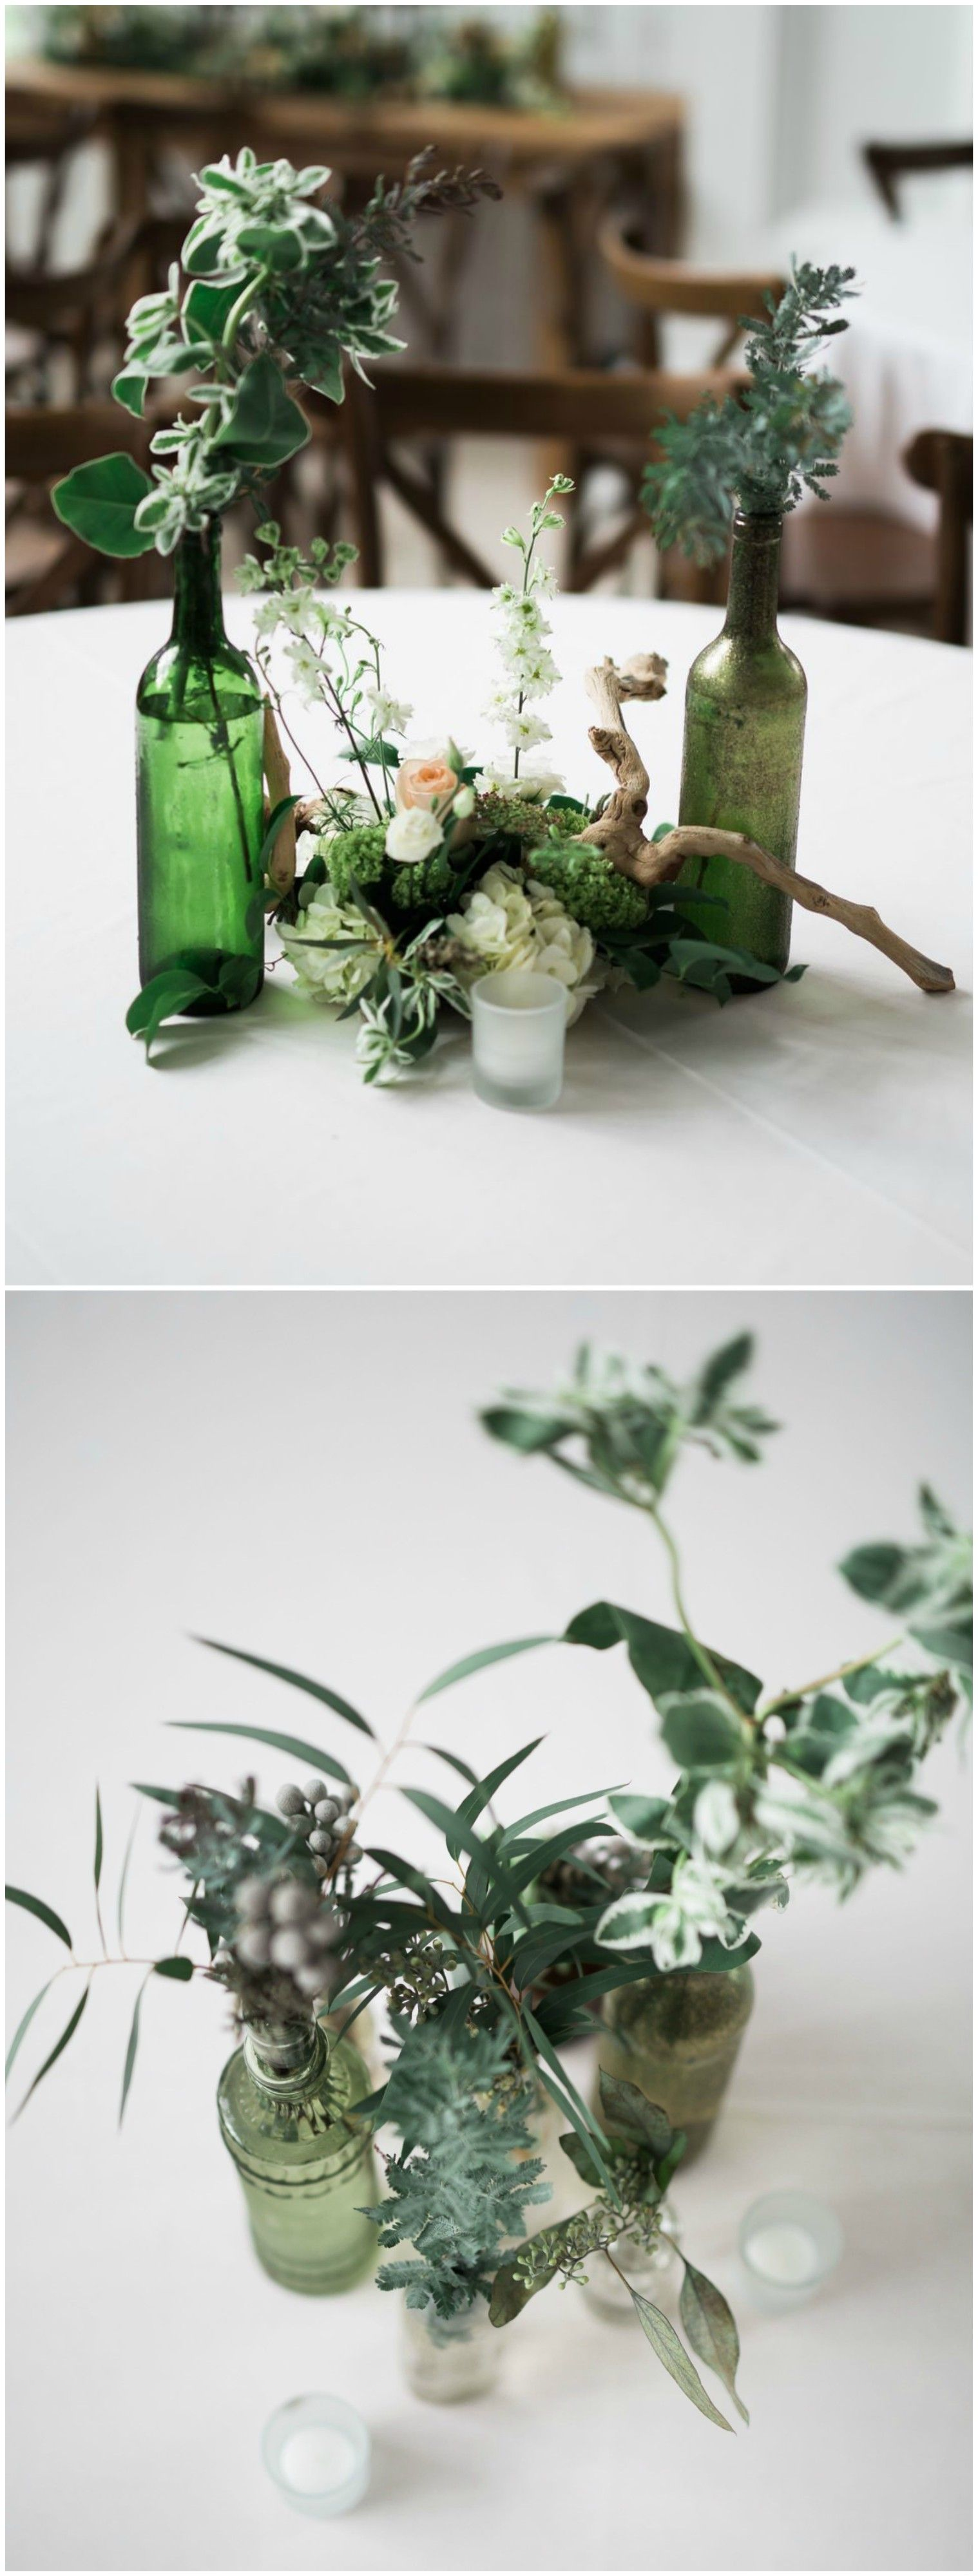 Design. Natural Wedding Centerpieces. Home Design Just another ...